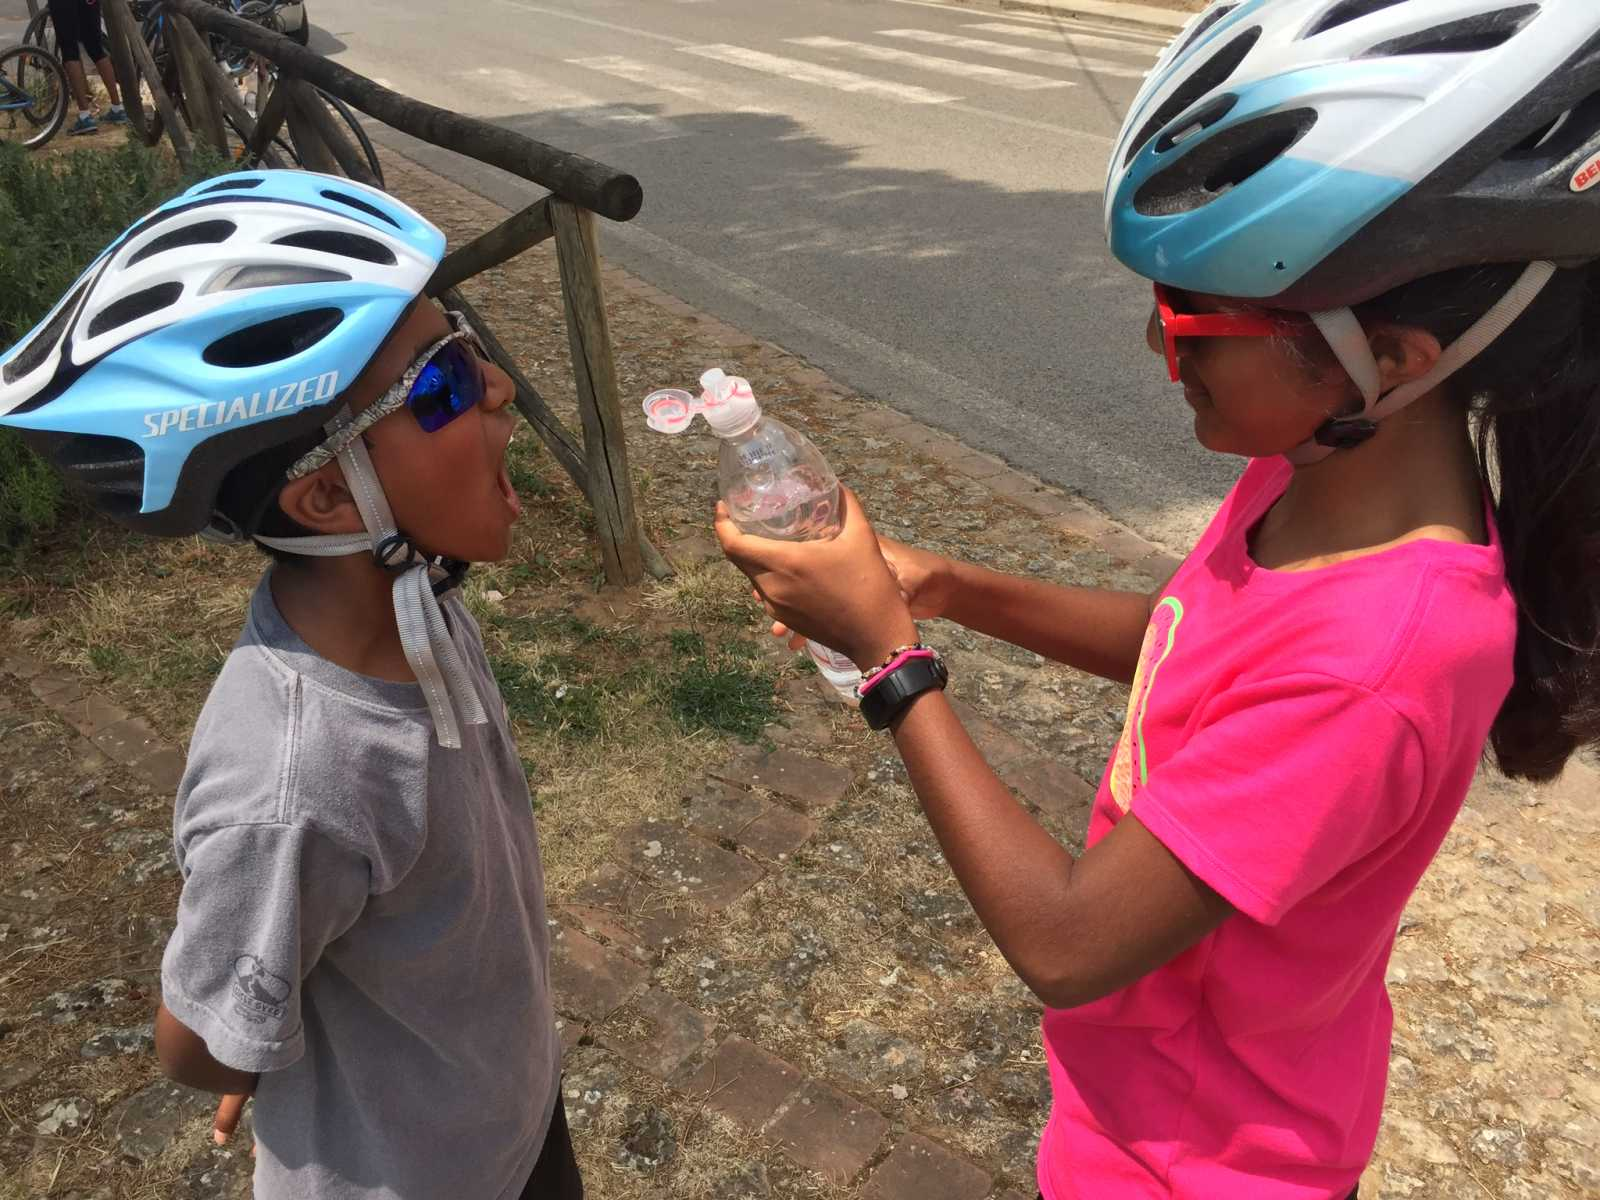 Family biking tours | kids playing together | bikeinflorence.com